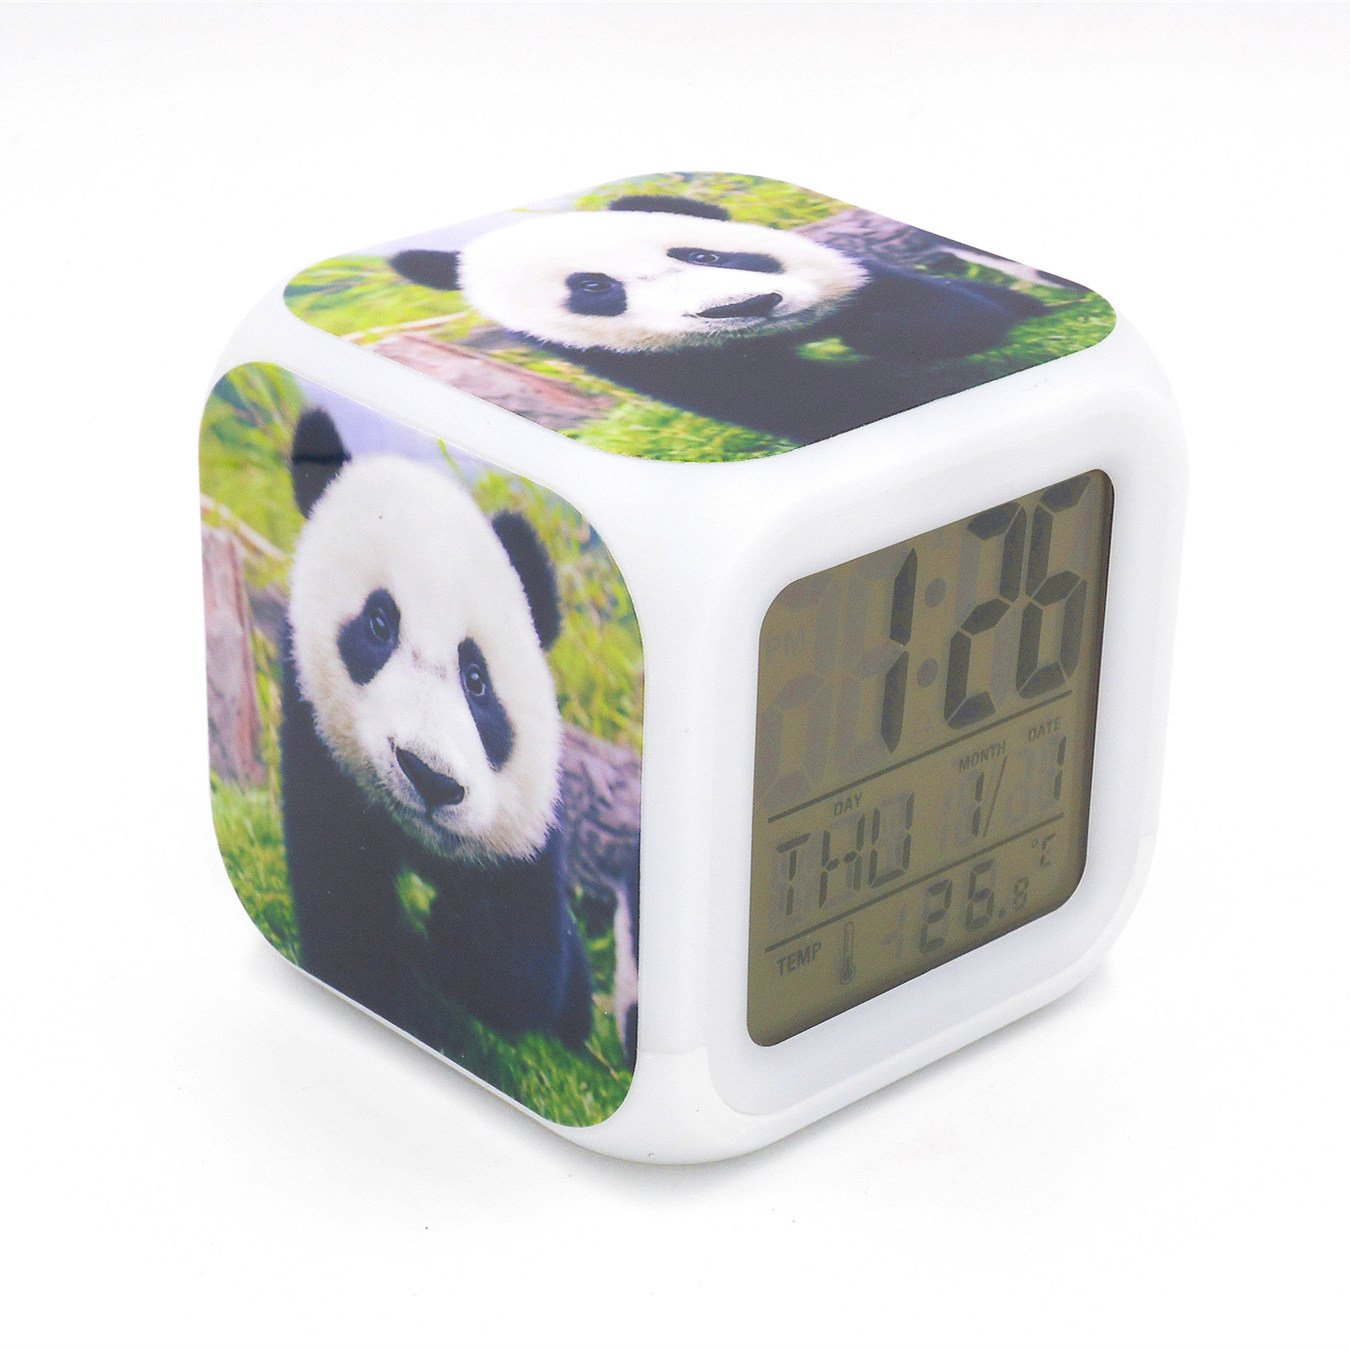 BoFy Led Alarm Clock Little Panda Animal Pattern Personality Creative Noiseless Multi-Functional Electronic Desk Table Digital Alarm Clock for Unisex Adults Kids Toy Gift